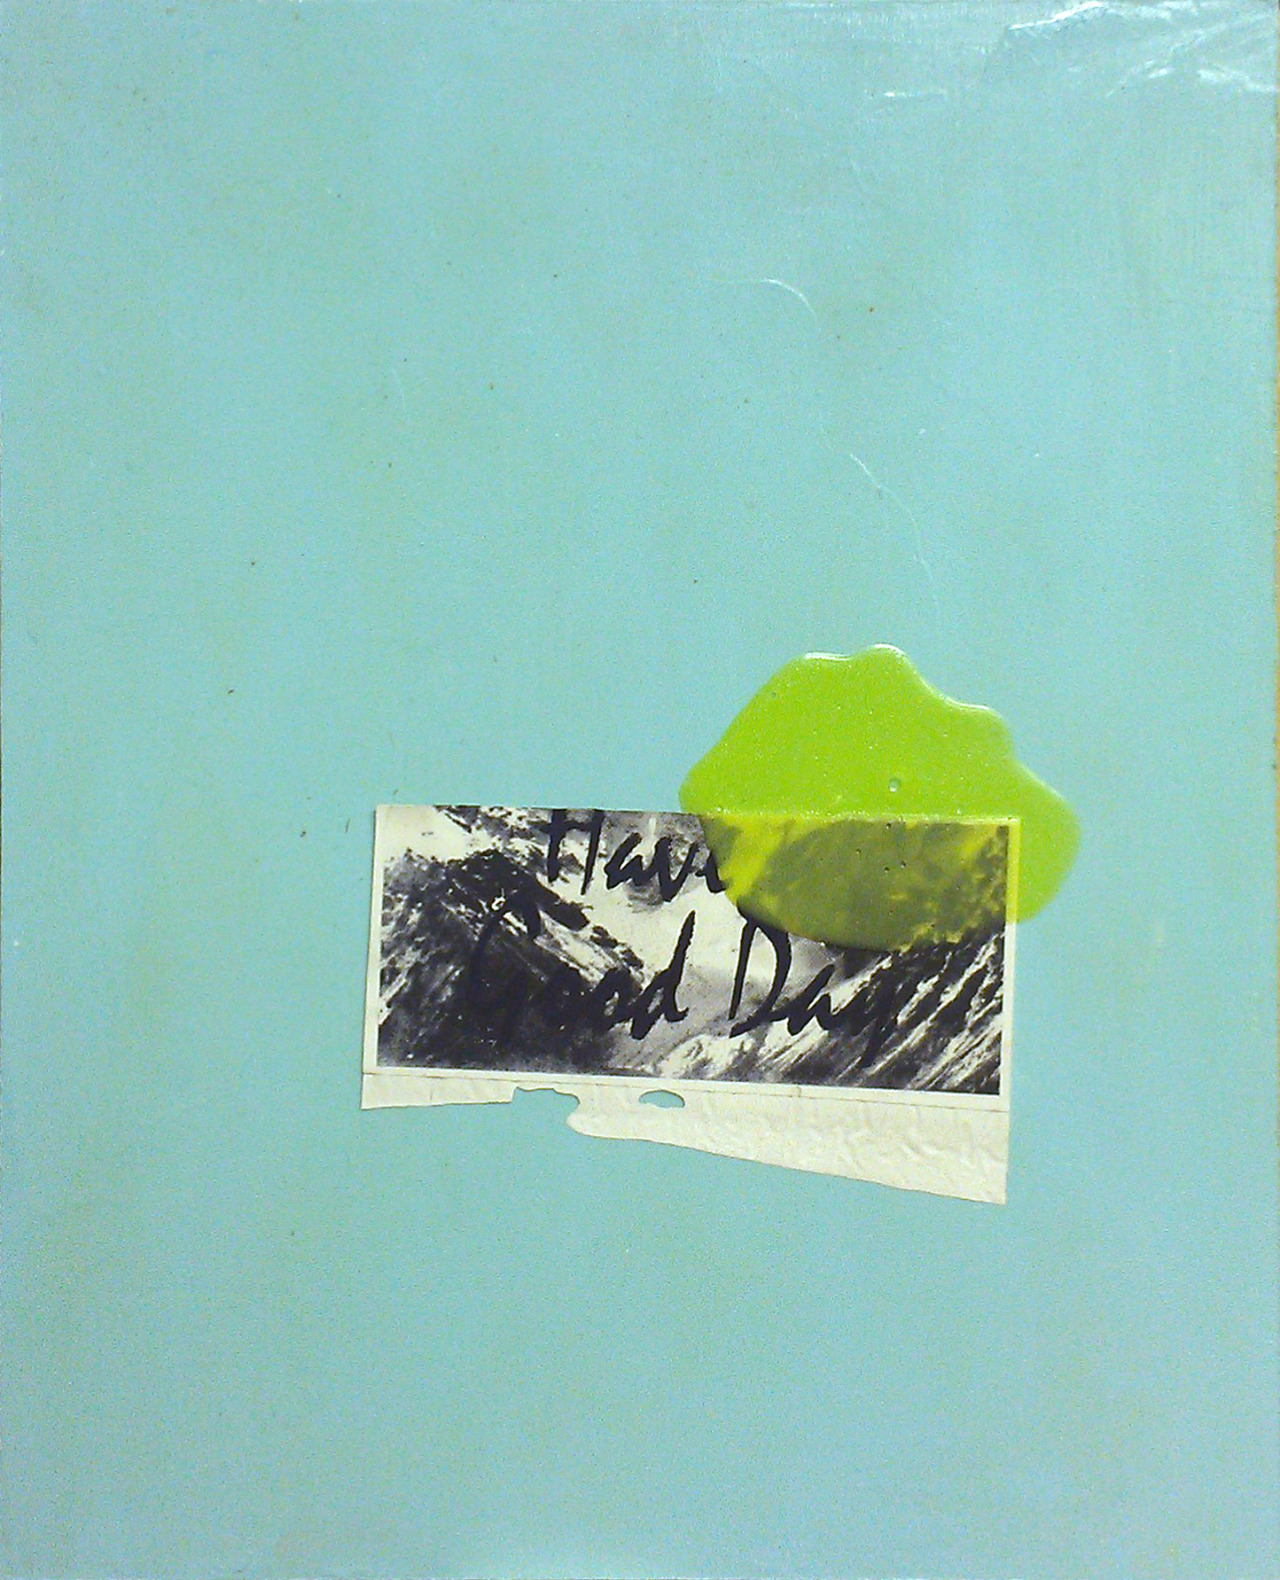 Slime Painting #1, Acrylic, enamel and dirt on board, 2013